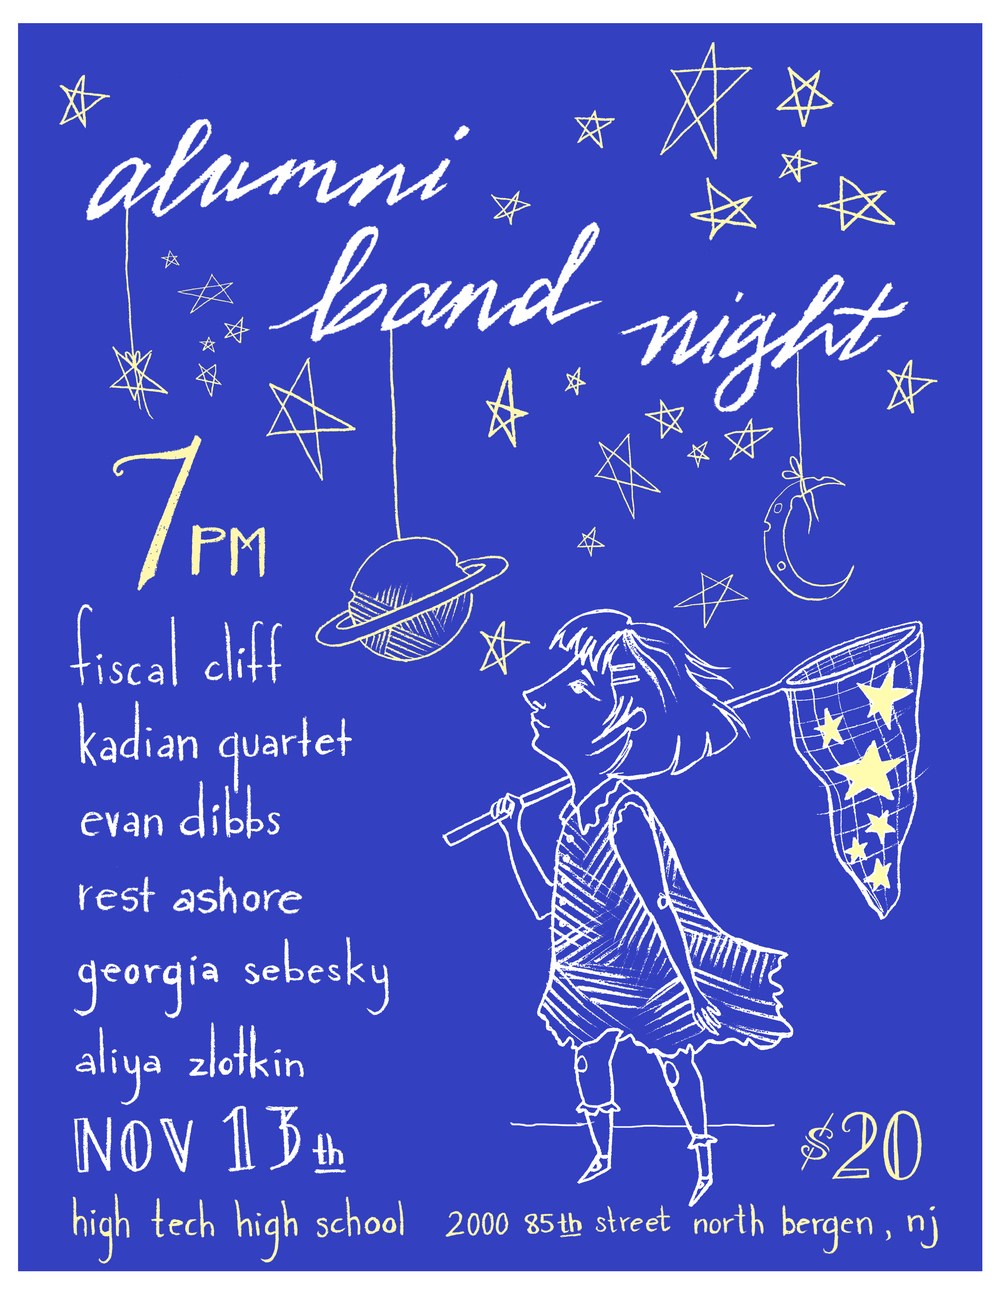 website_alumnibandnight_nov13.jpg